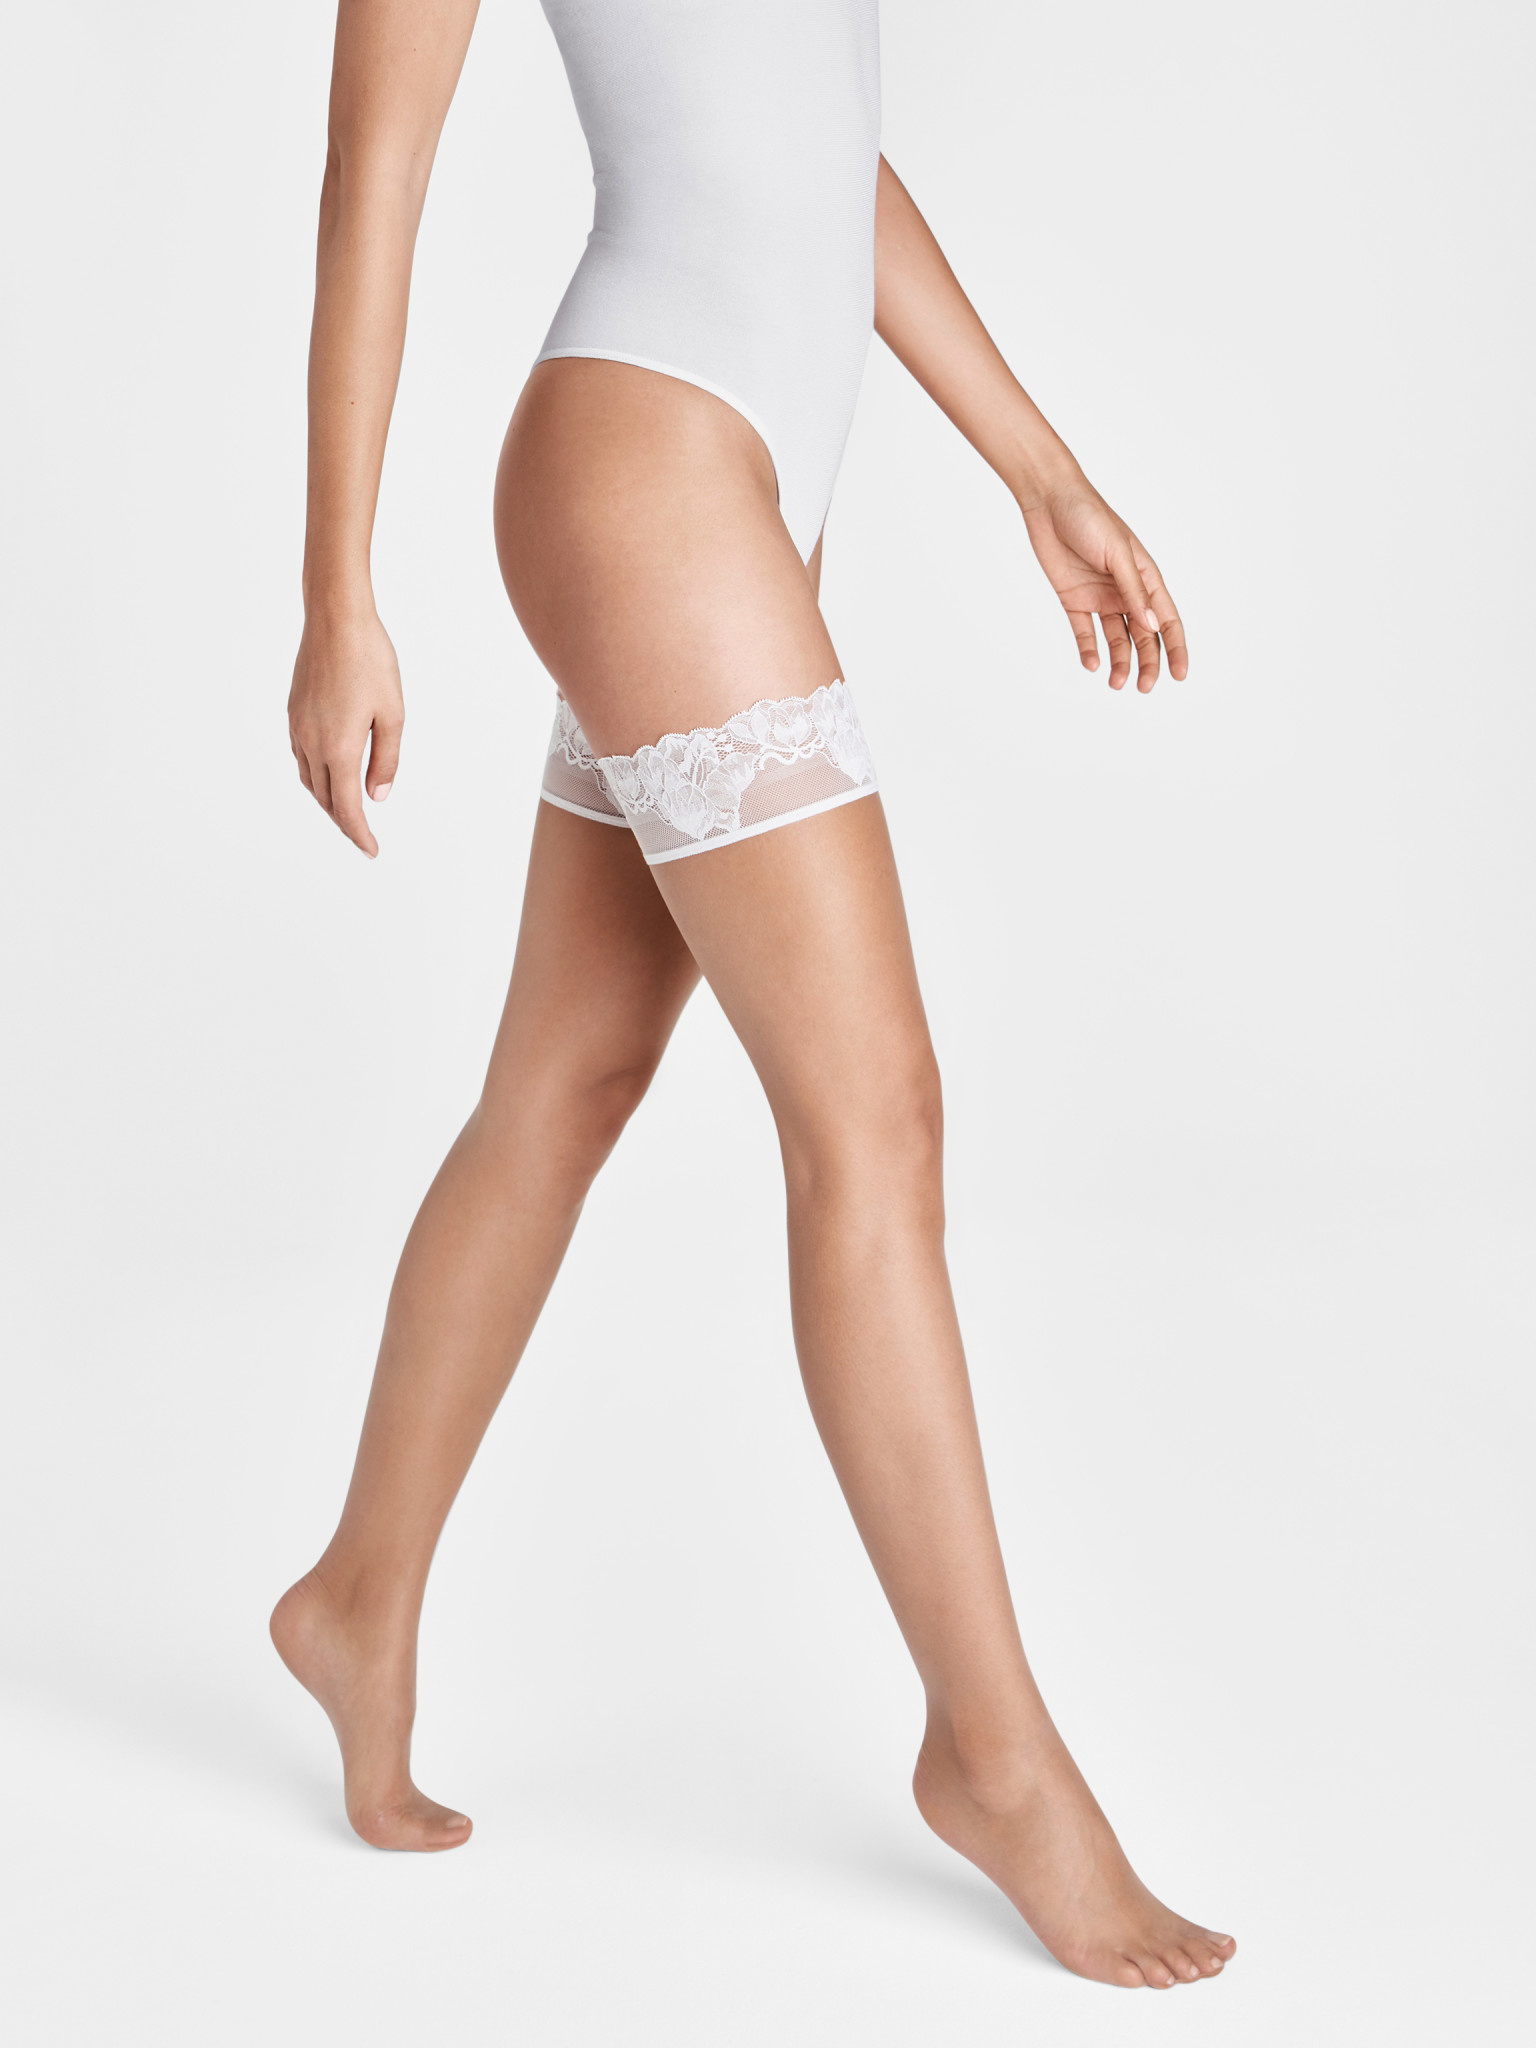 WOLFORD 20207 Nude 8 Lace Stay-Up